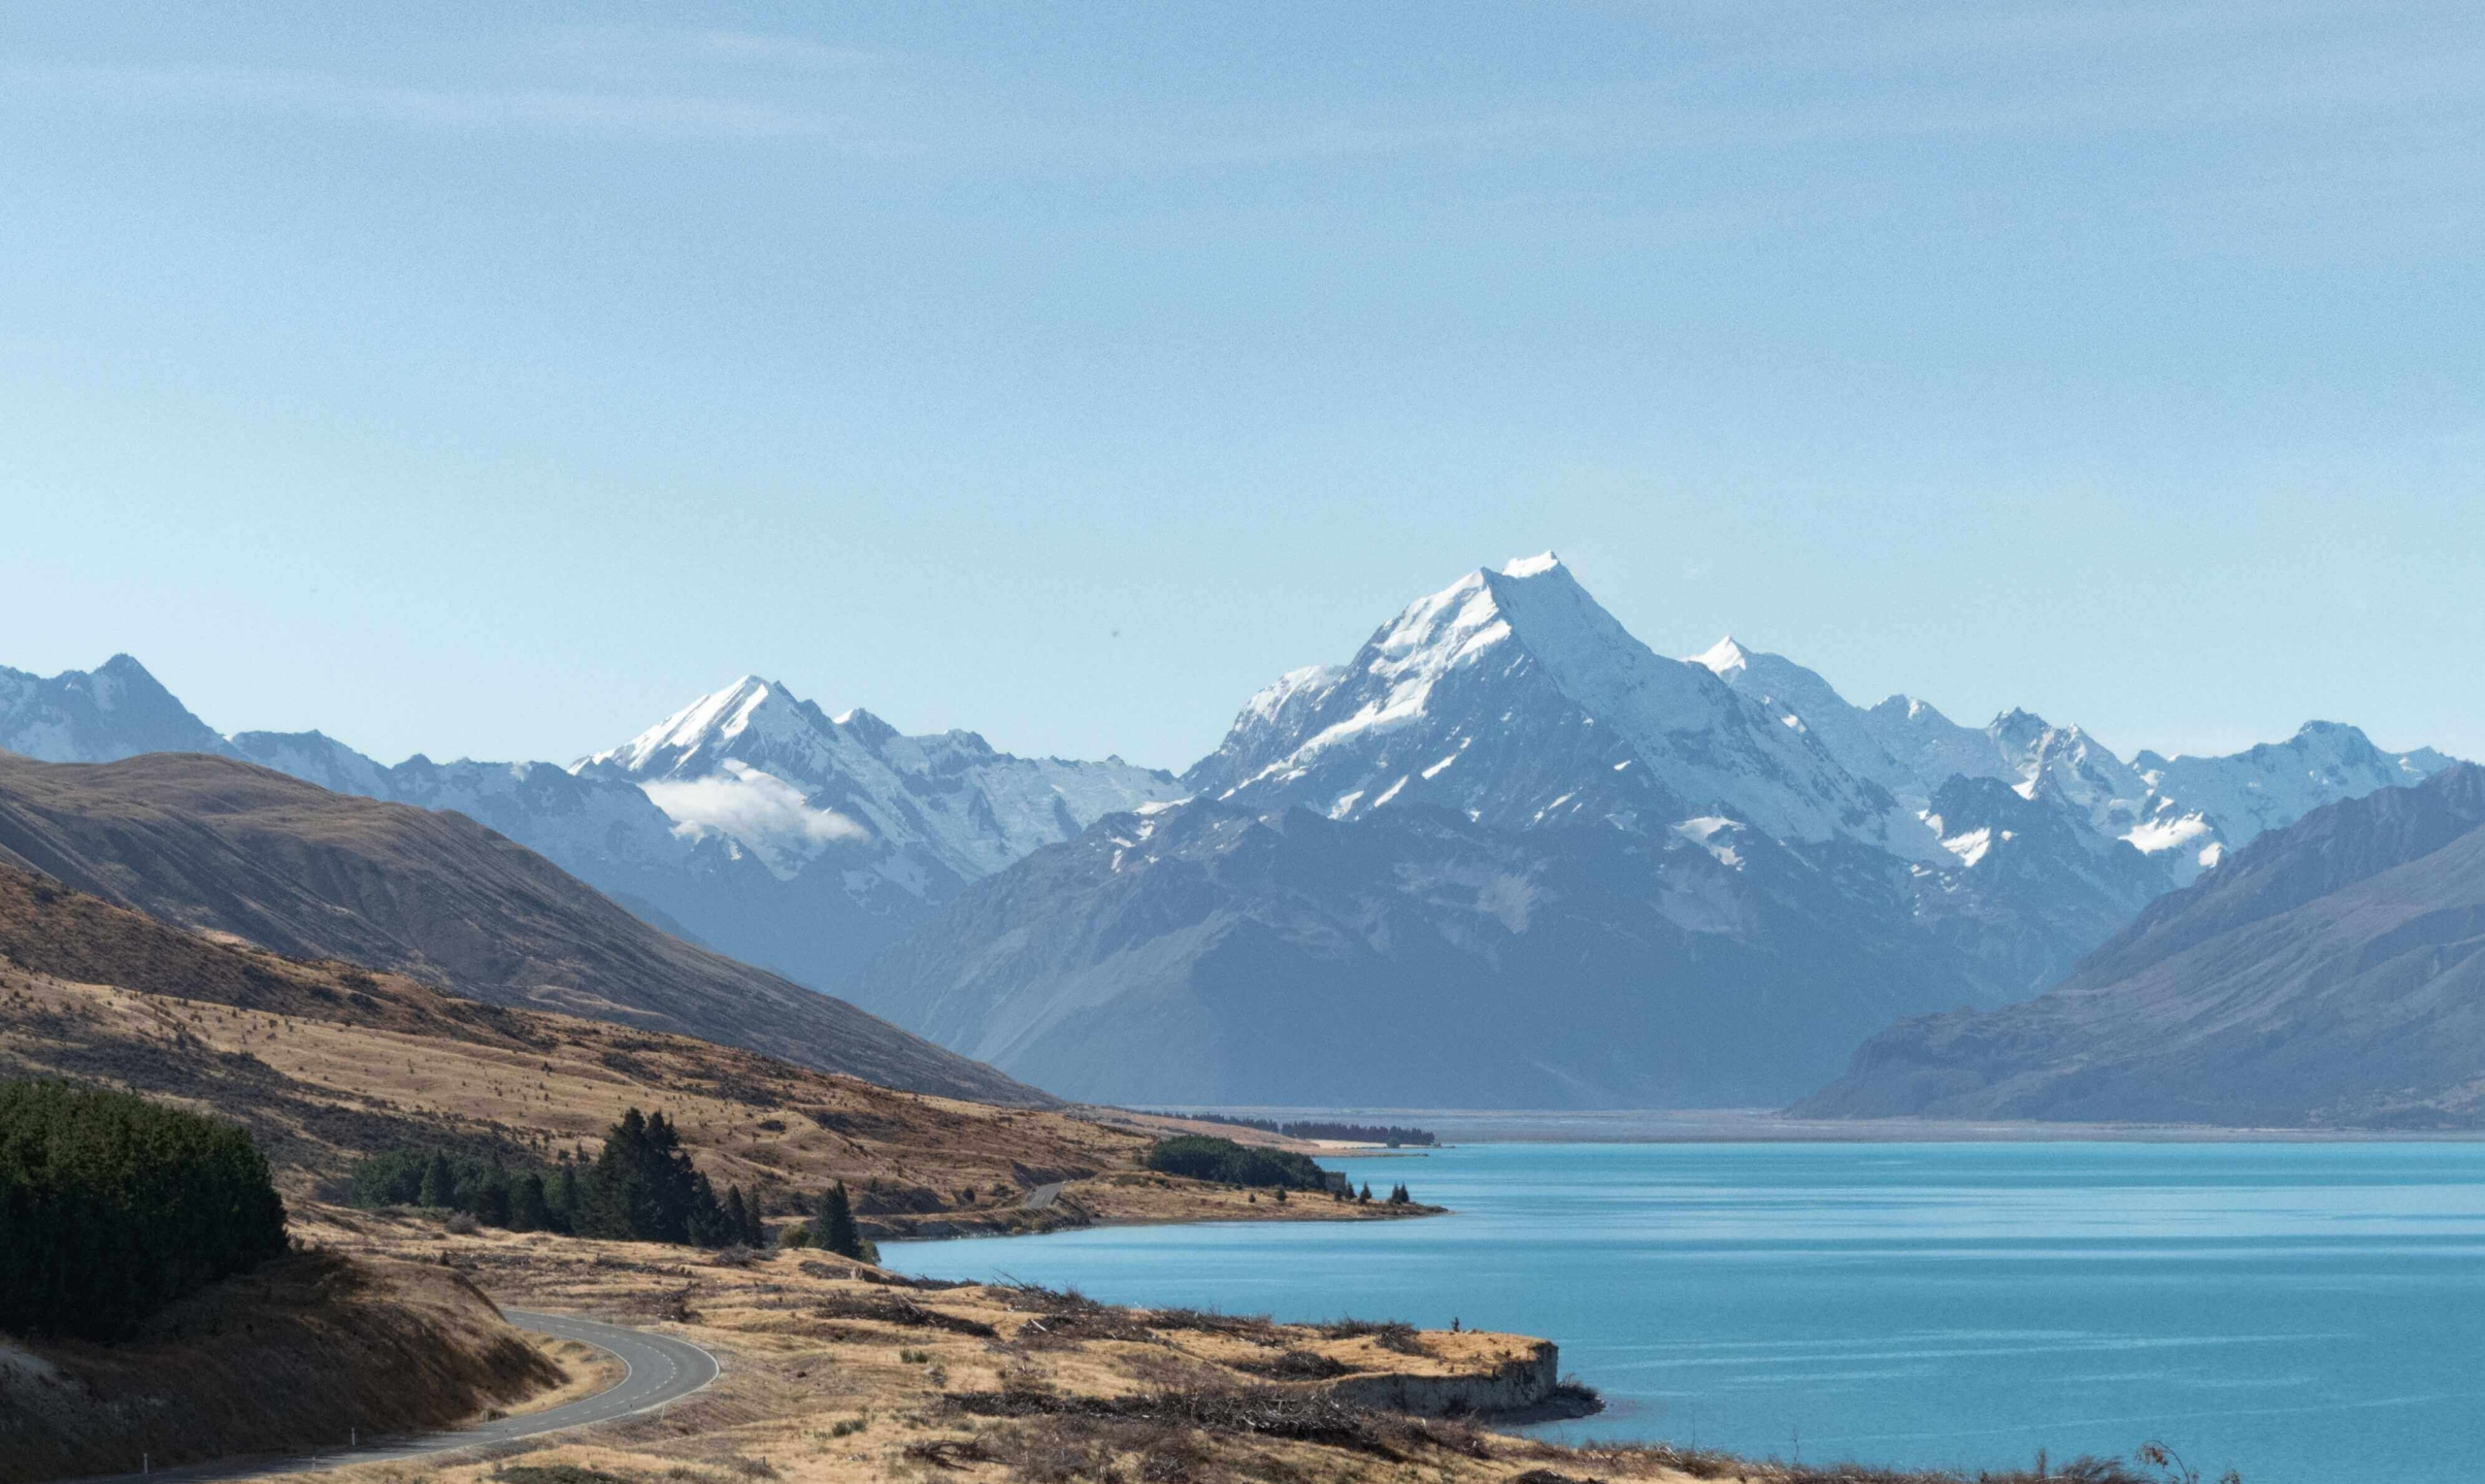 Top 5 Destinations in the South Island